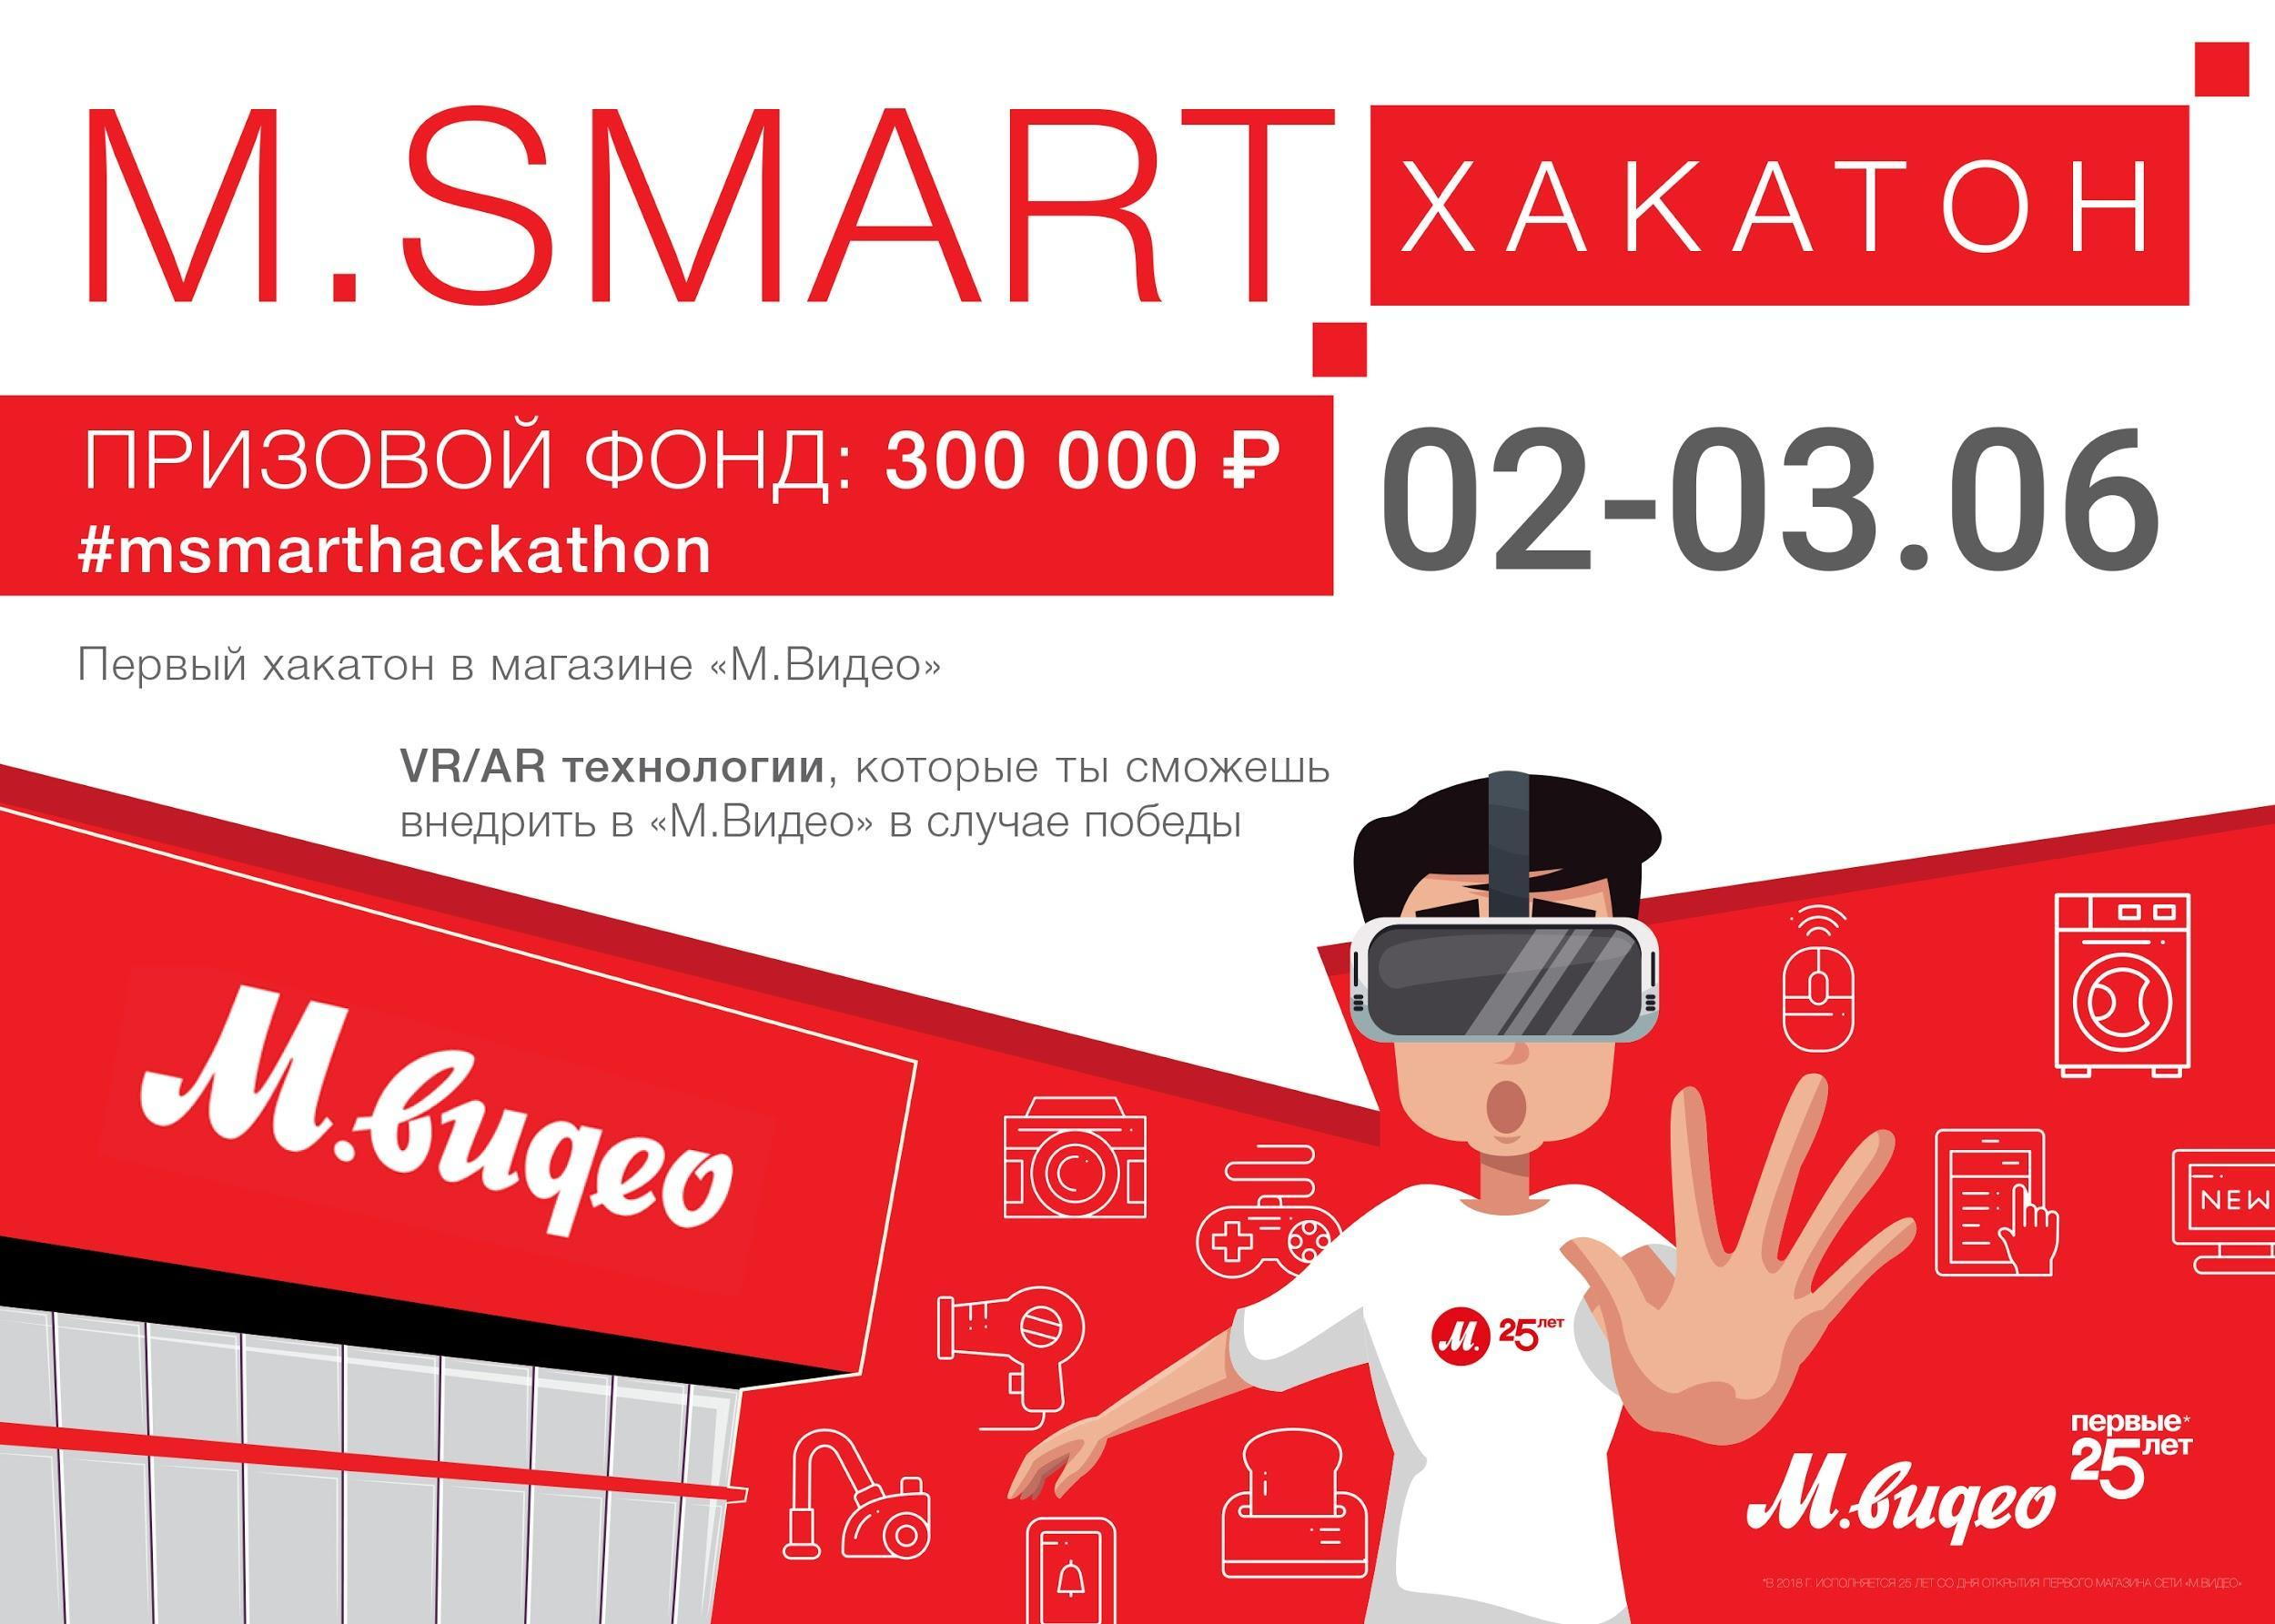 We invite you to the M.SMART hackathon from M.Video